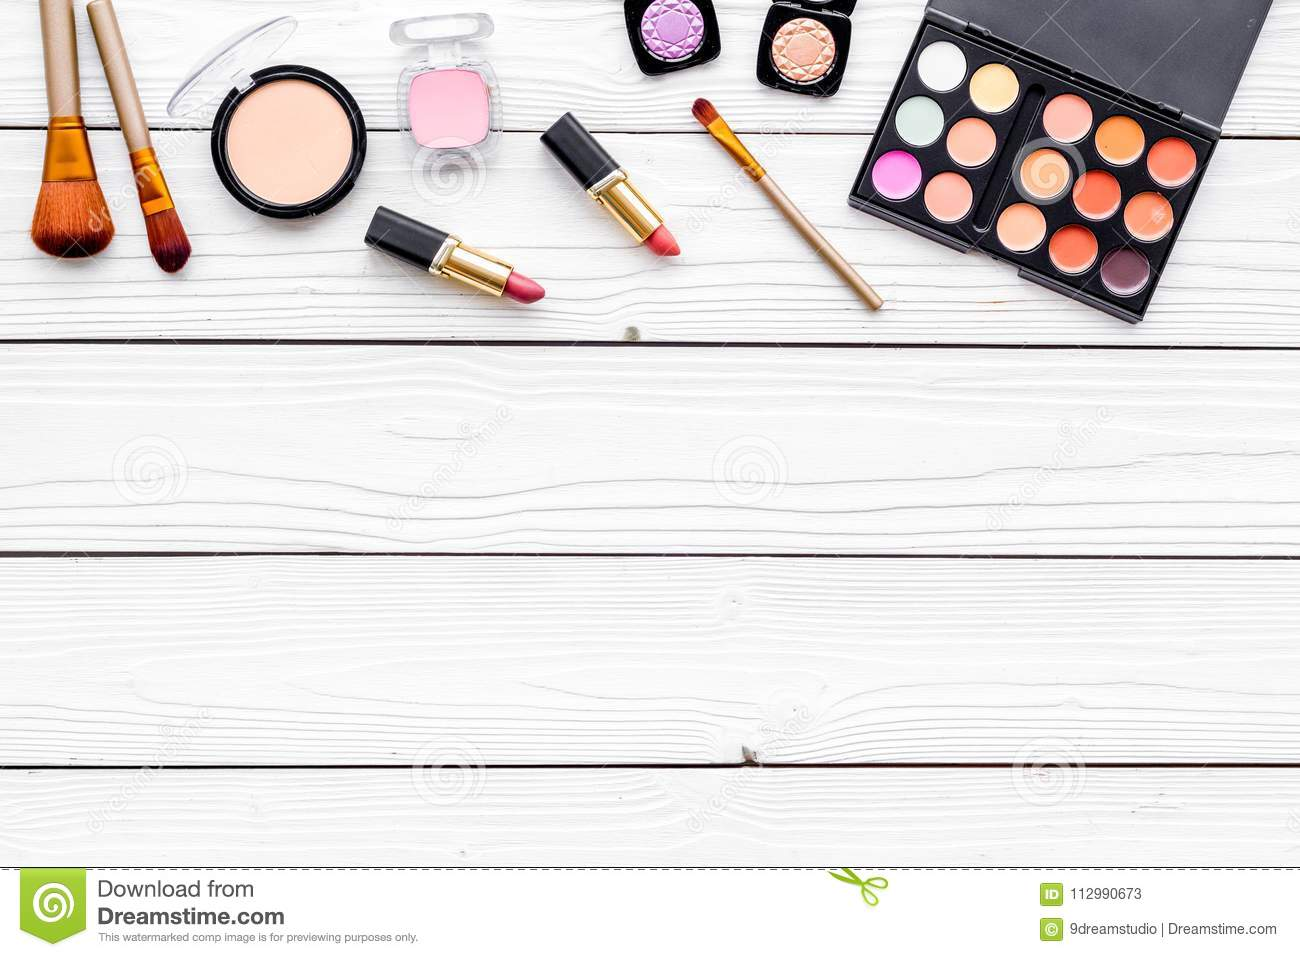 Decorative cosmetics set with eyeshadow, rouge, lipstick, brushes on white desk background top view copy space